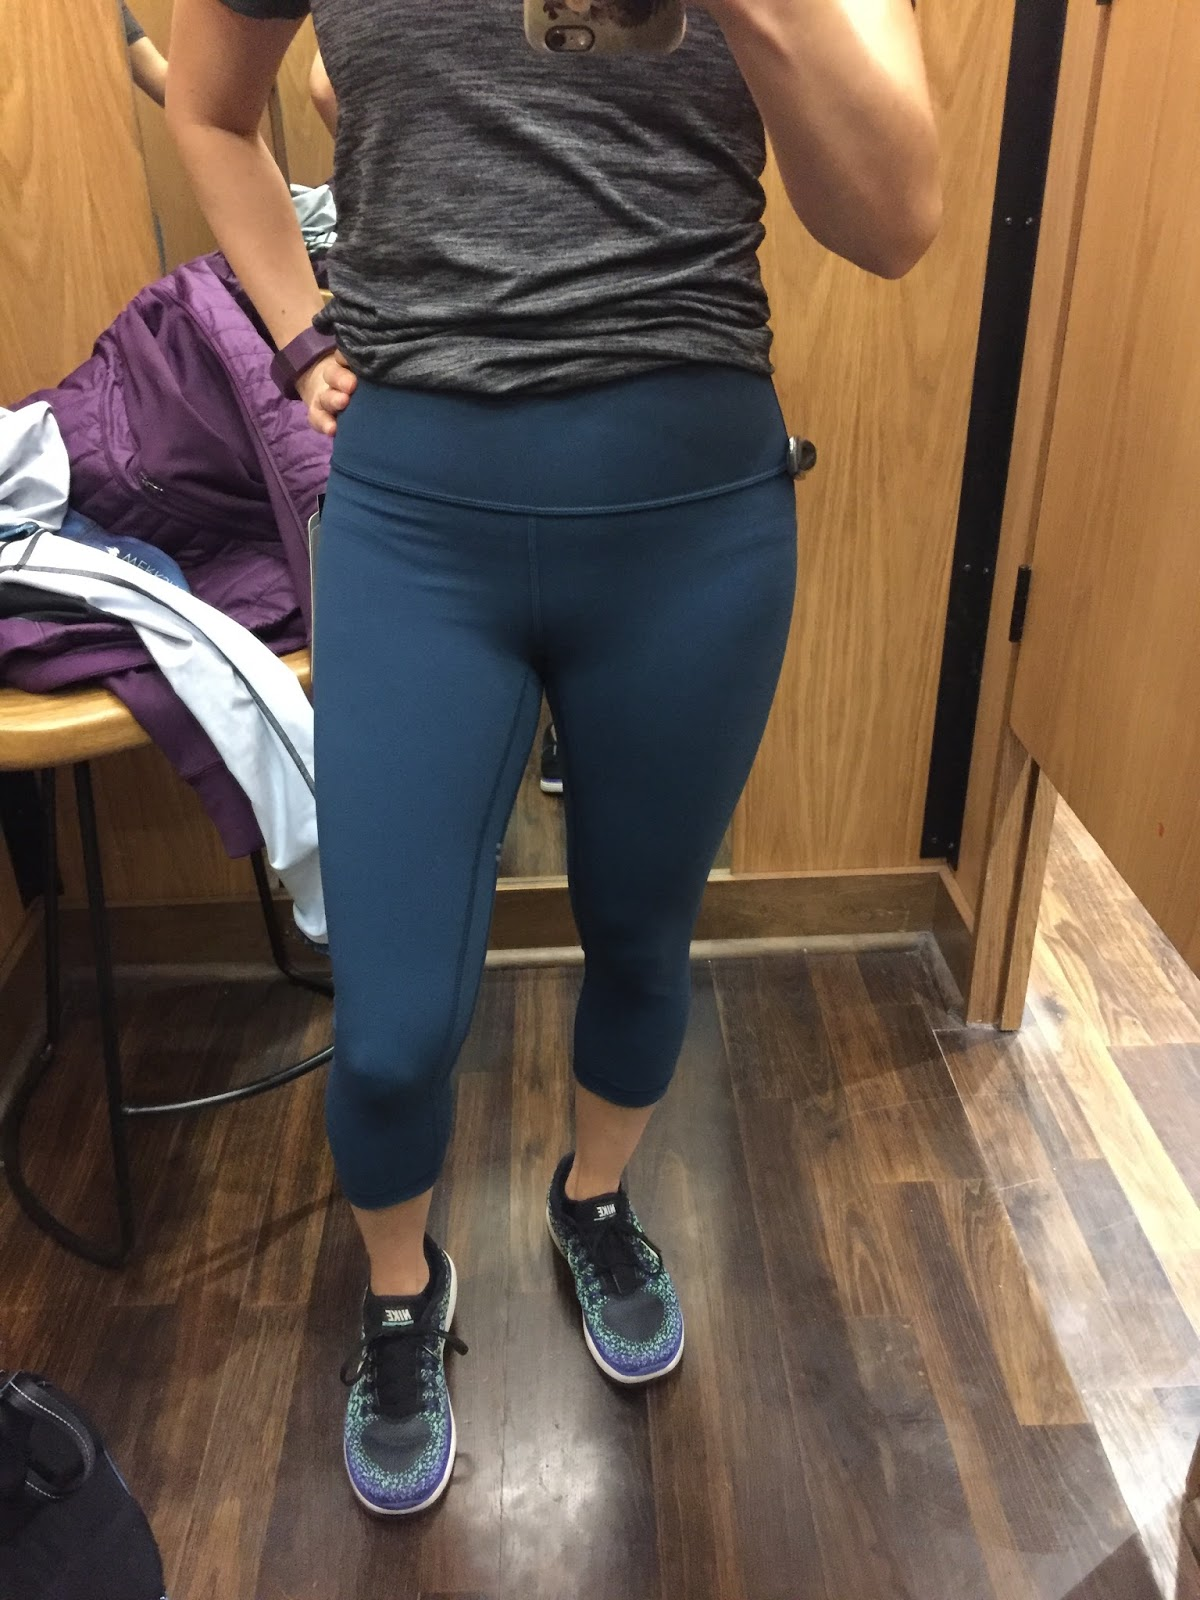 3bd5969f6f6 Petite Impact  Fit Review Friday! First Mile Jacket